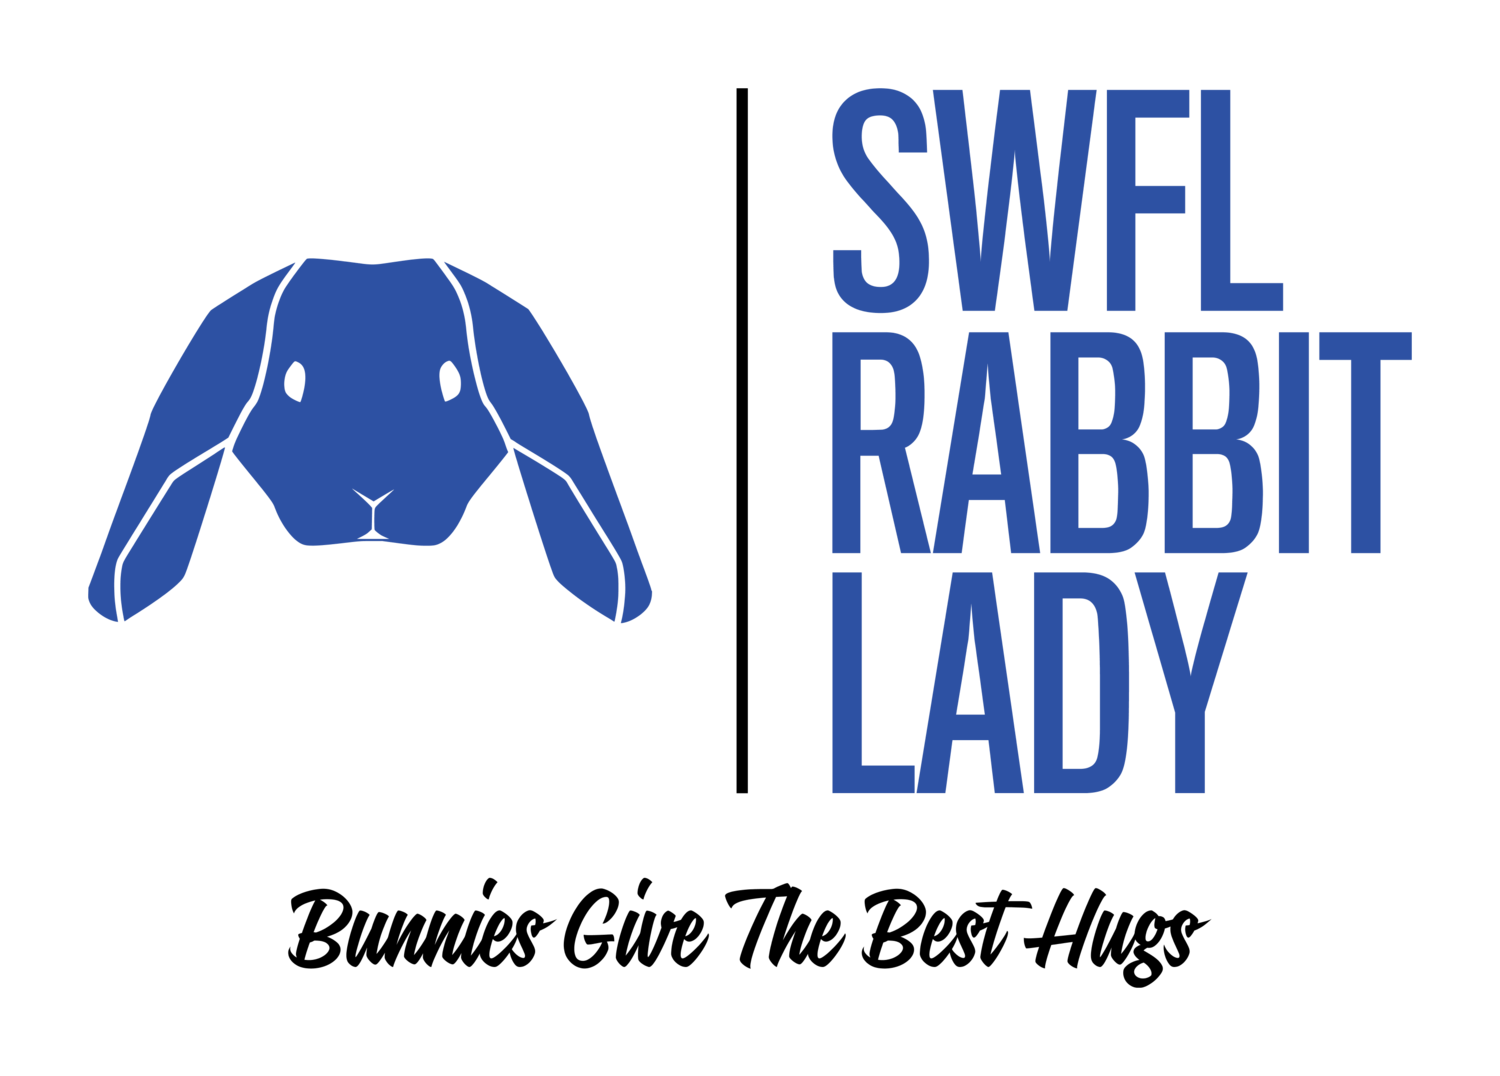 SWFL Rabbit Lady